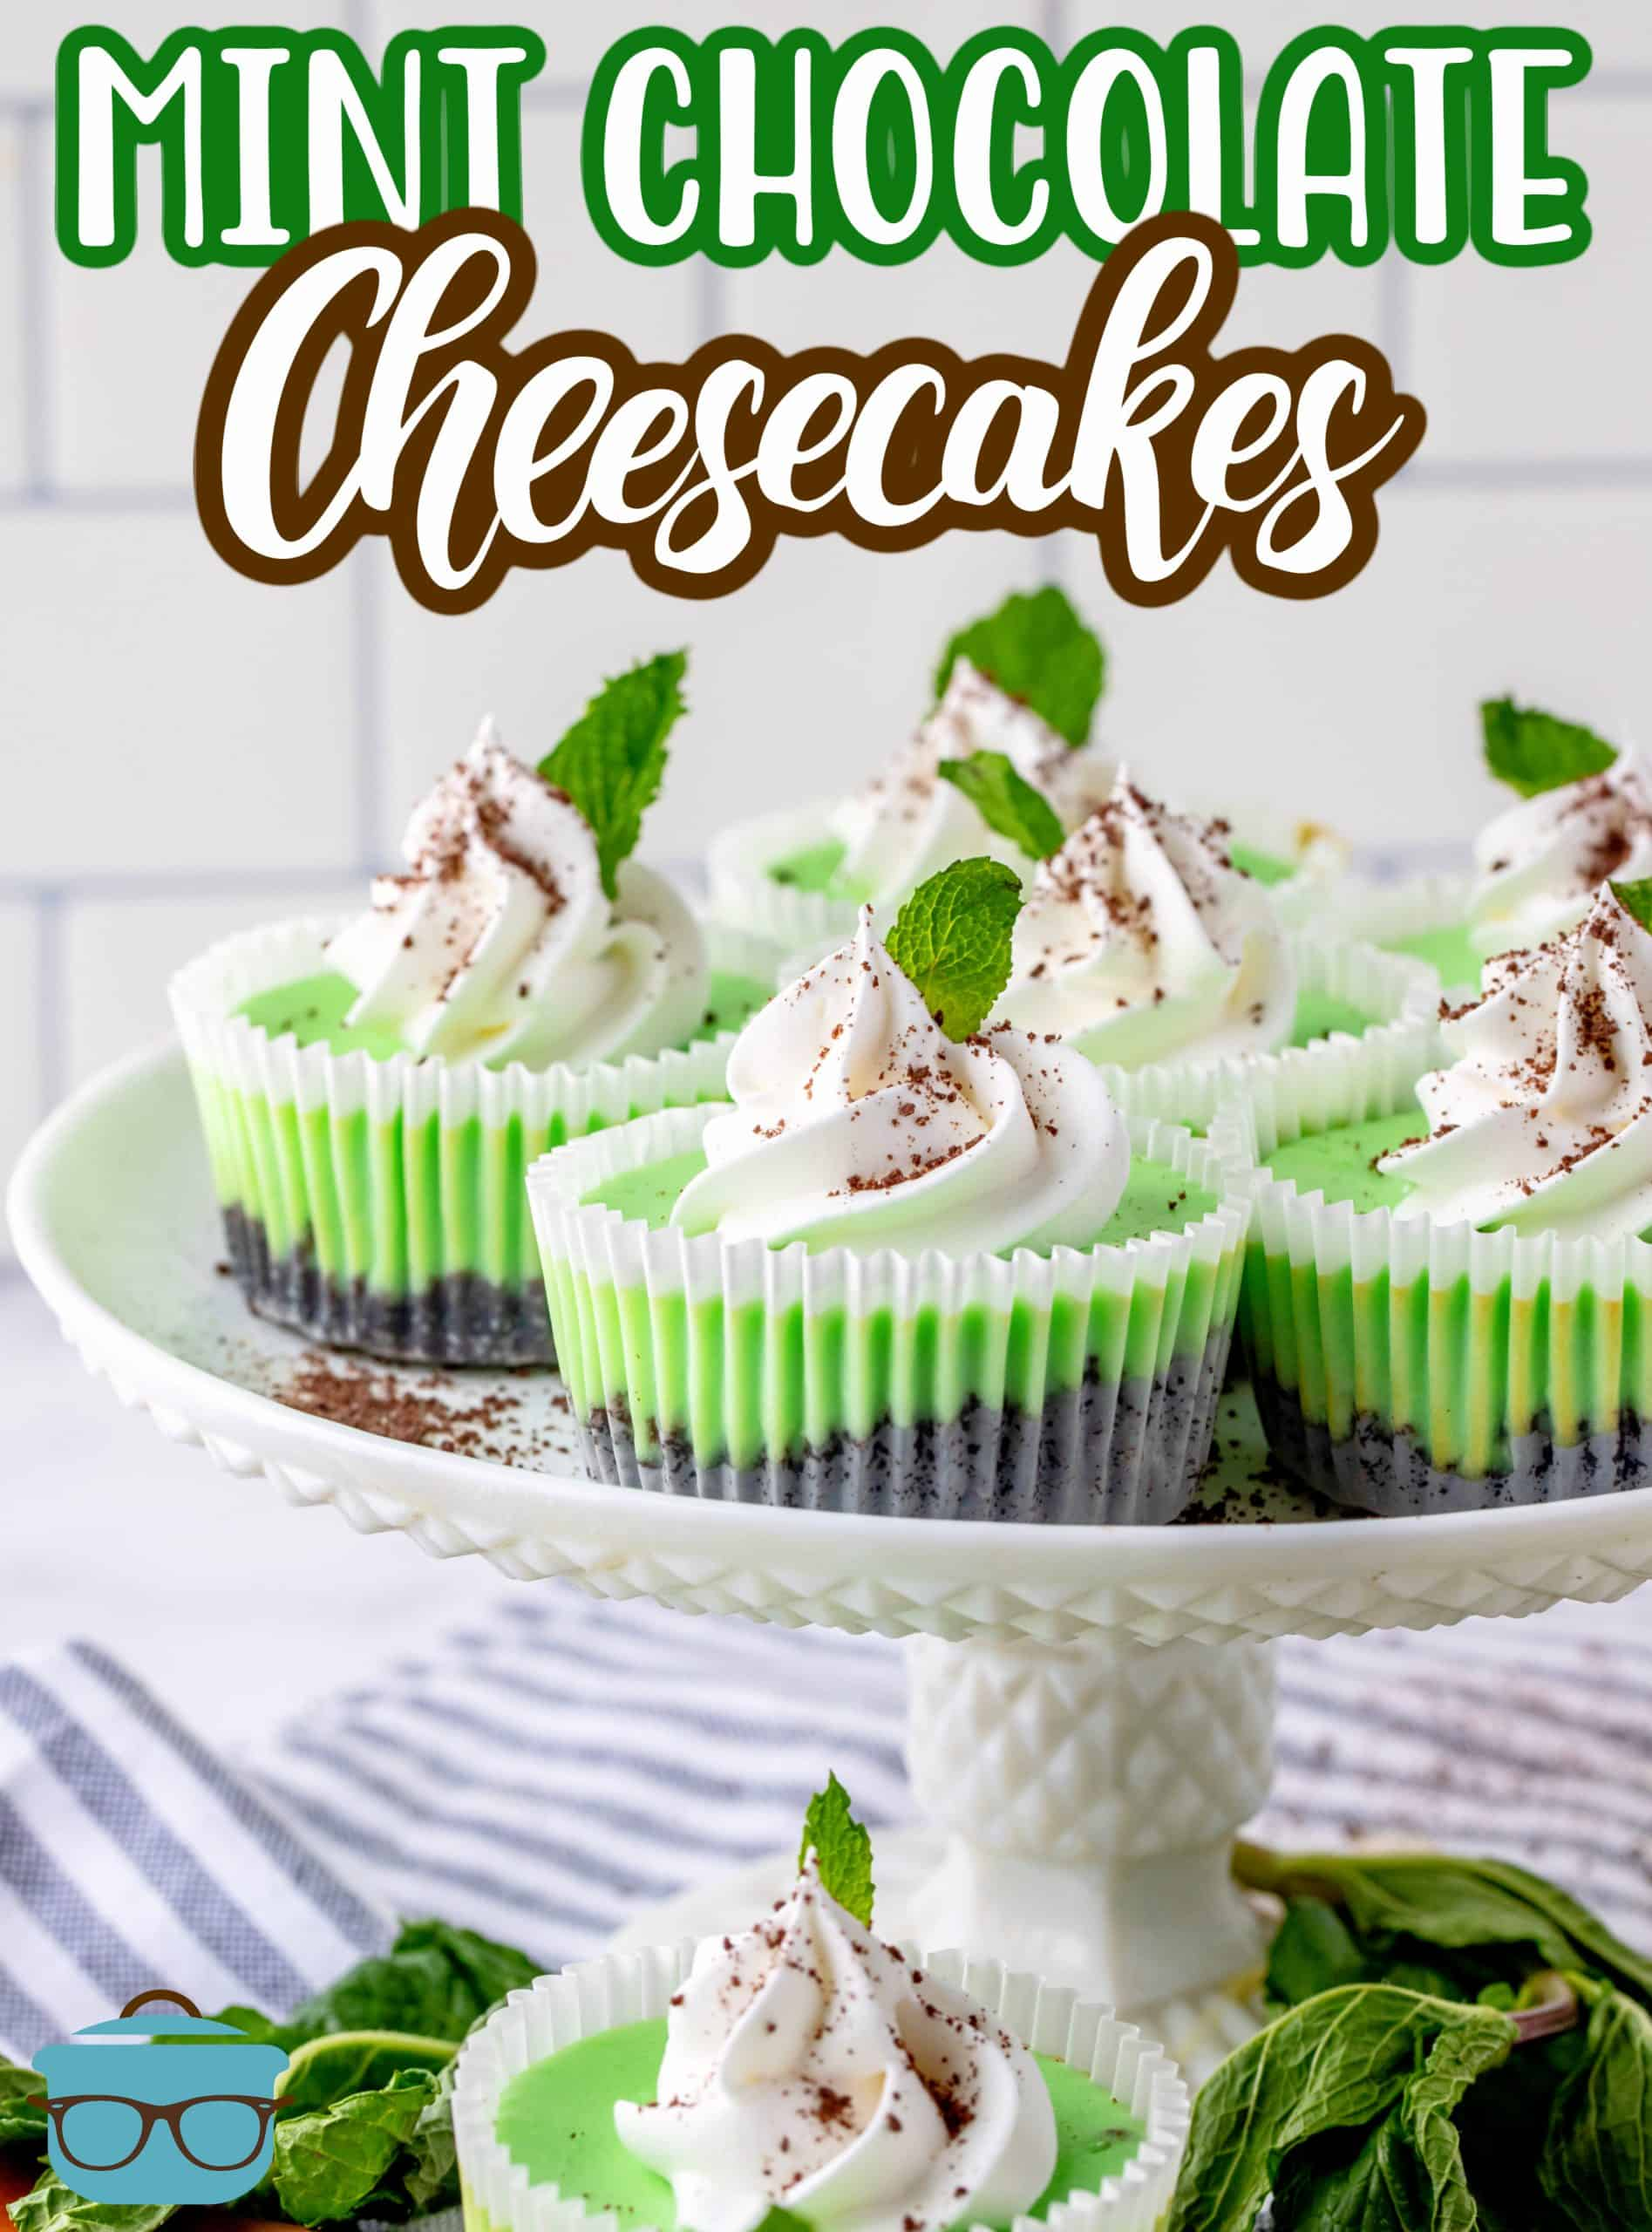 These Mini Mint Chocolate Cheesecakes are a delicious single serving dessert that are easy to make and bake! They can serve a crowd and have the perfect chocolate mint flavor.